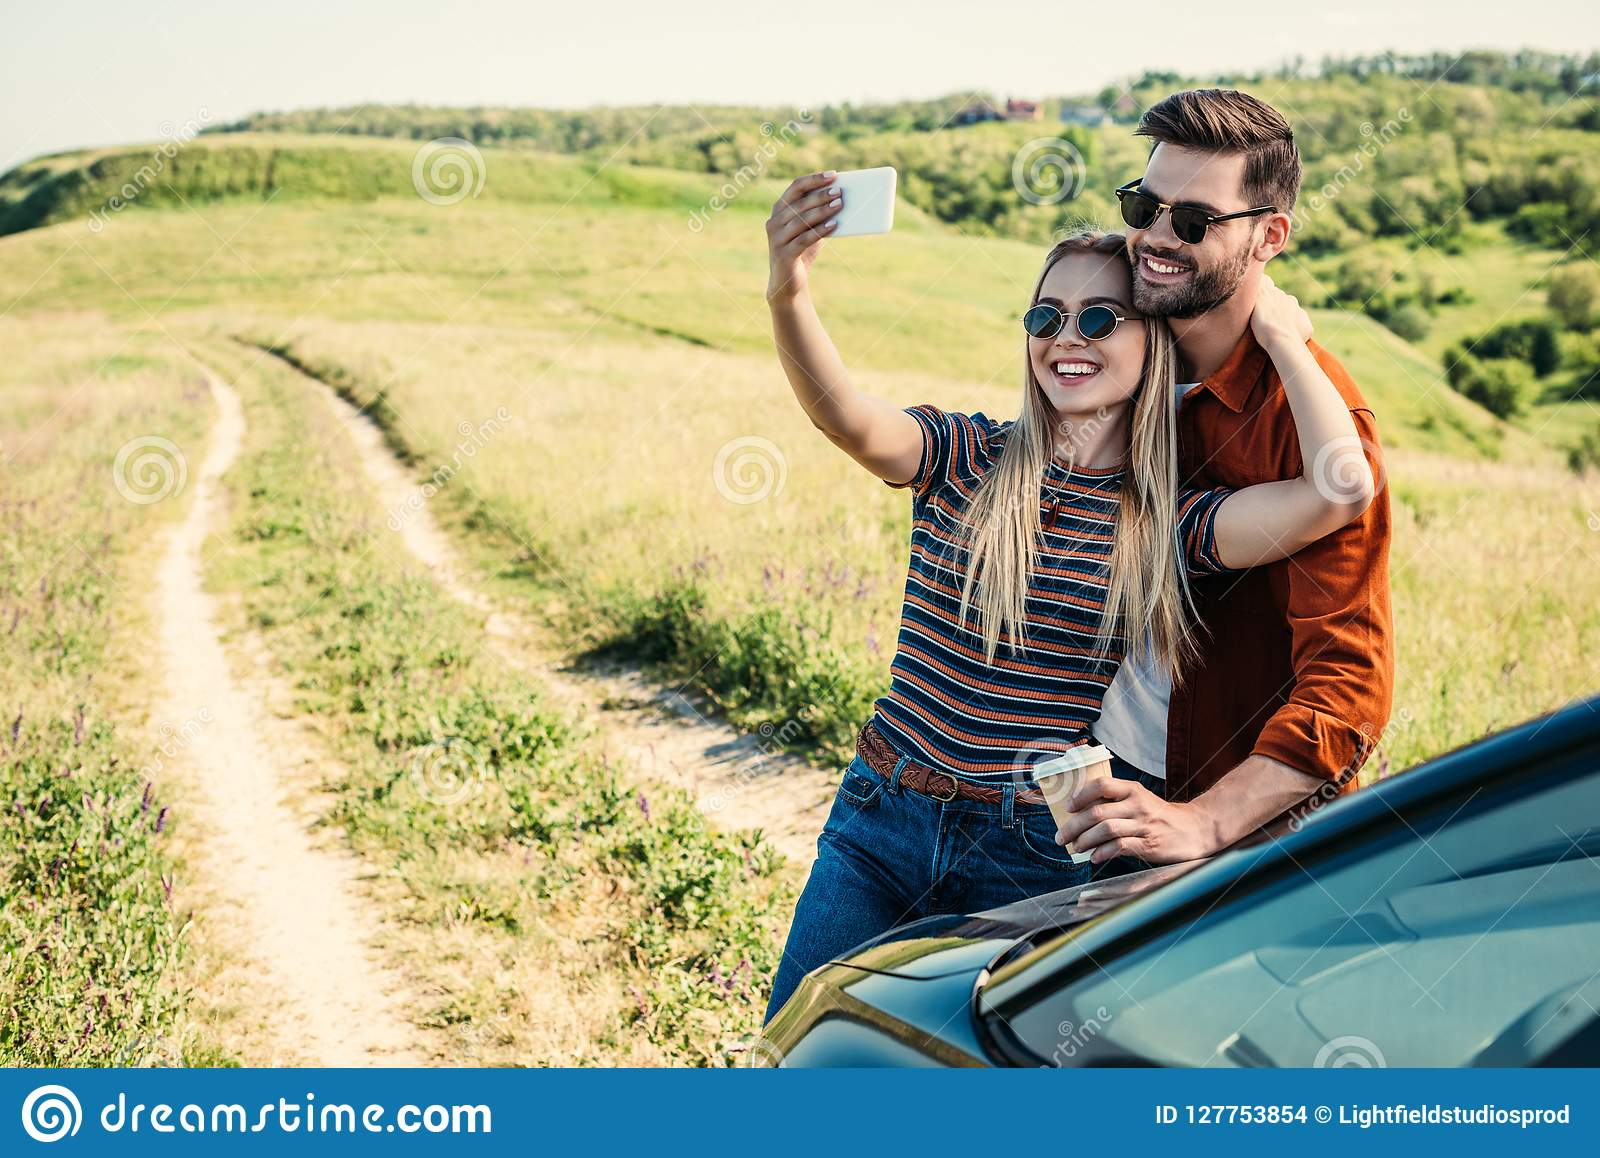 smiling stylish couple in sunglasses with coffee cup taking selfie on smartphone near car on rural